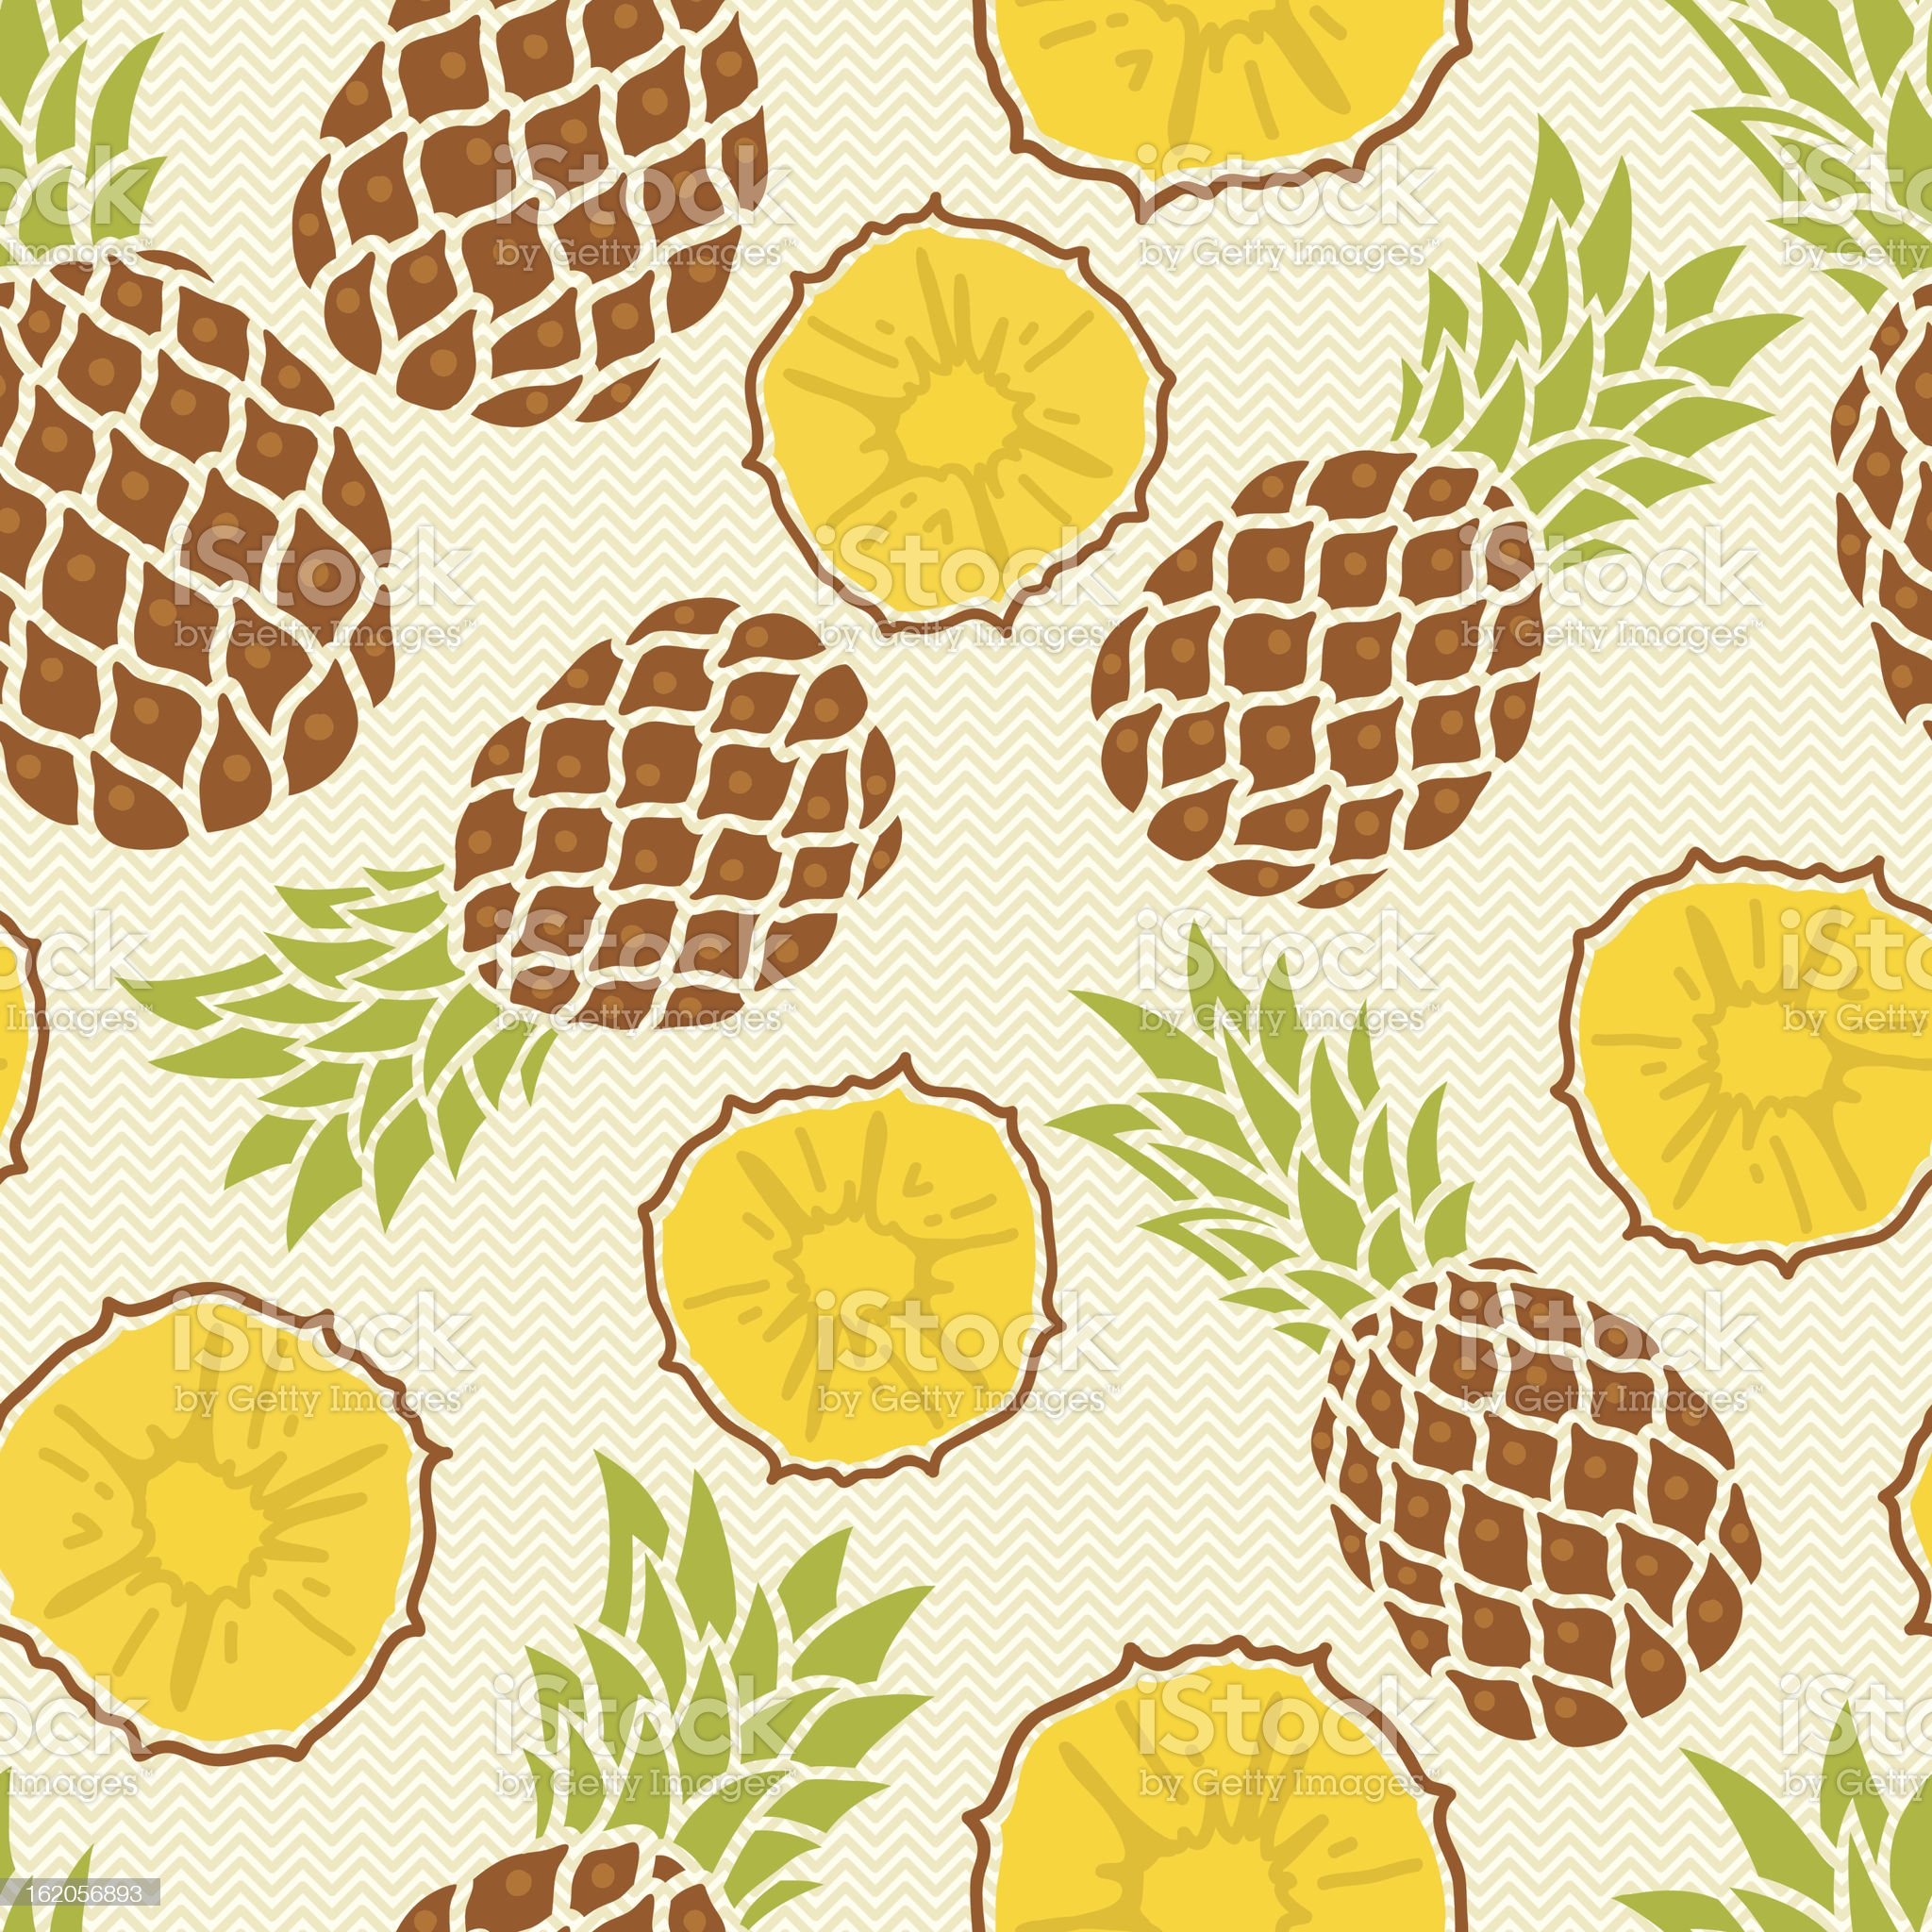 Seamless pattern with pineapples royalty-free stock vector art